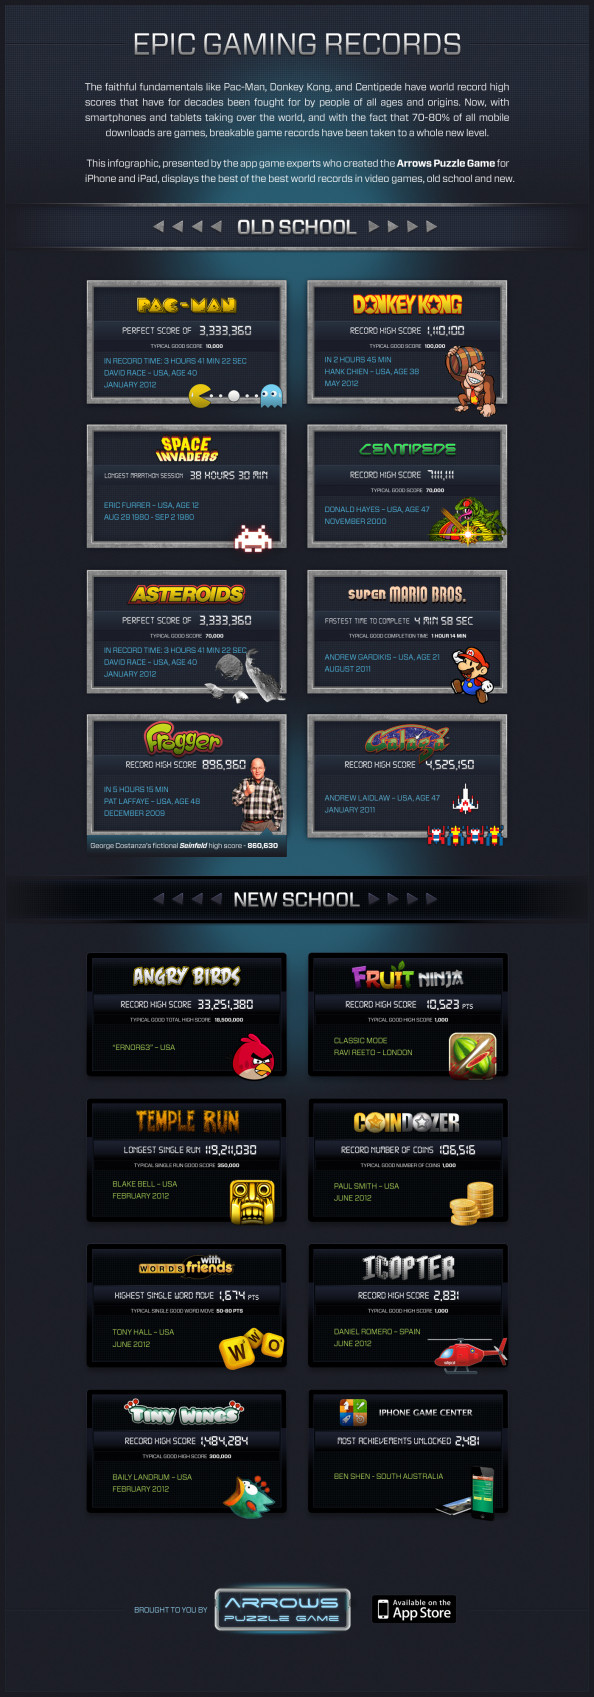 Epic Gaming Records: Then and Now  Infographic